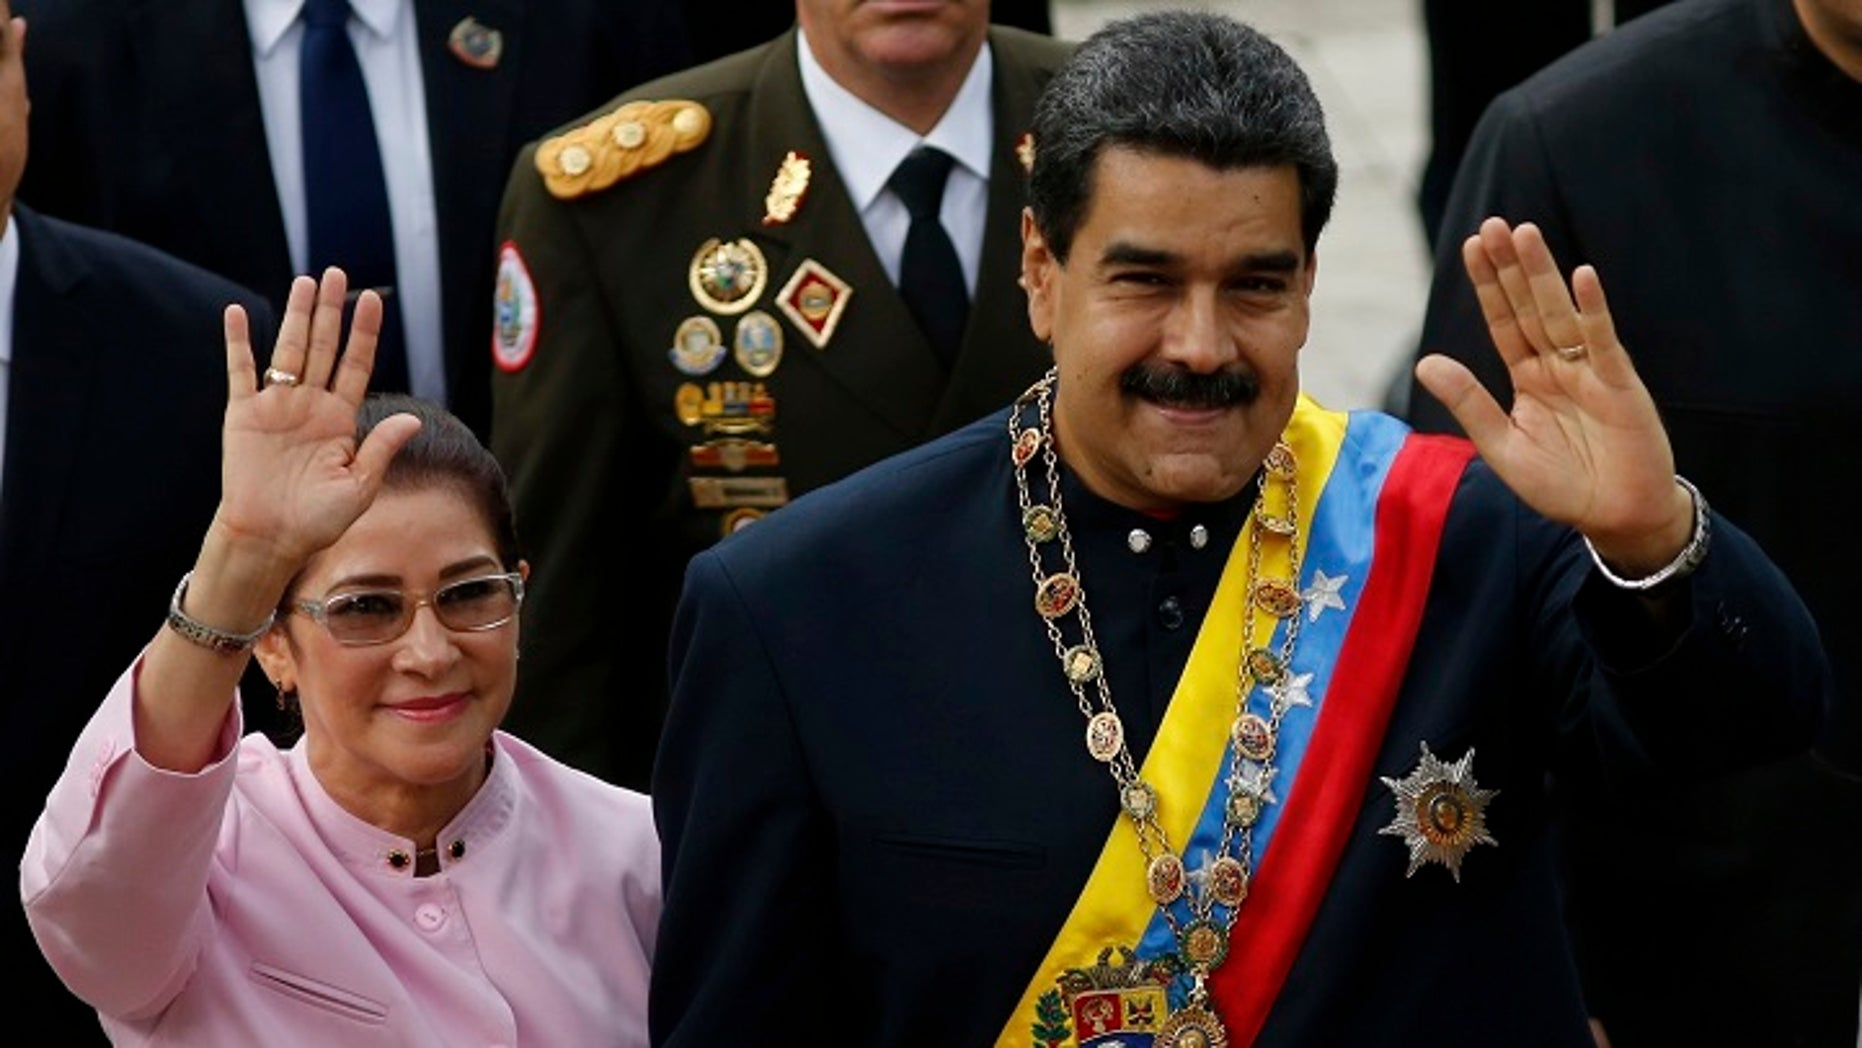 Venezuelan President Nicolas Maduro with his wife, Cilia Flores.